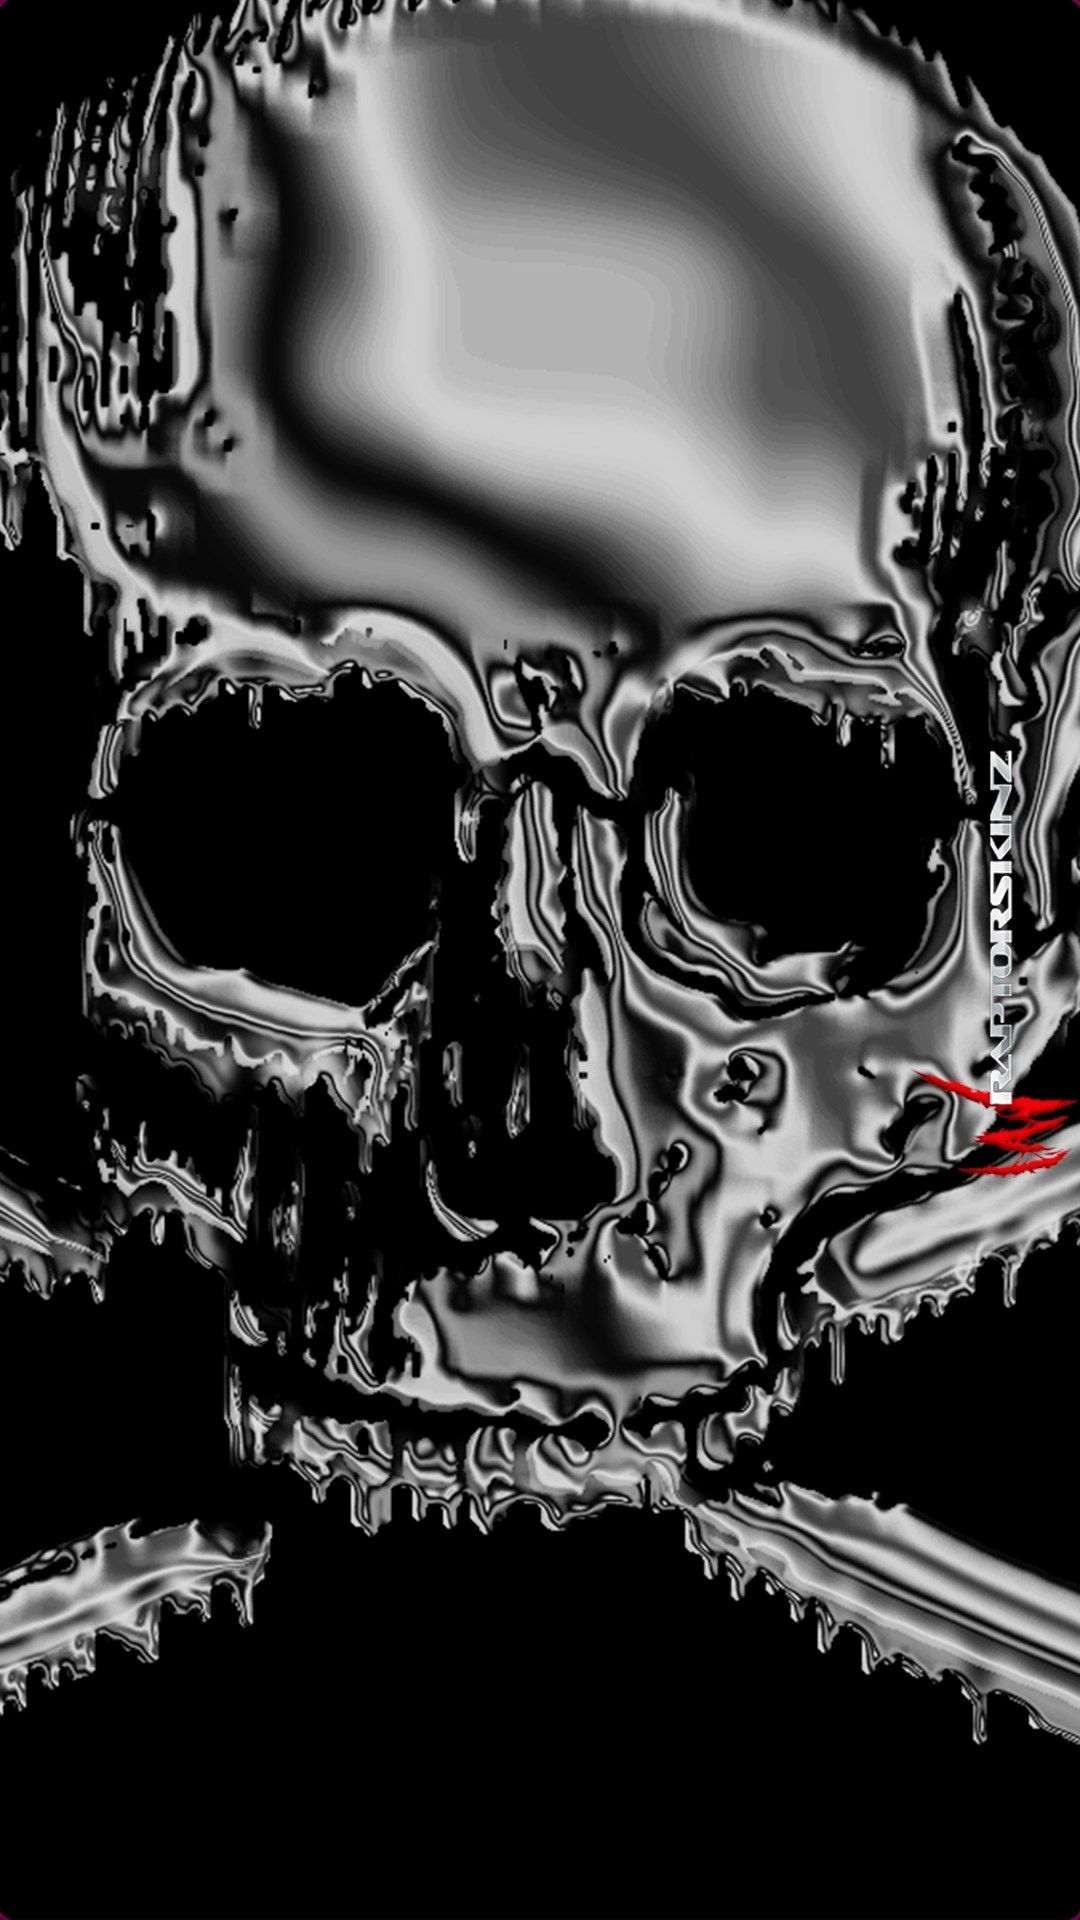 Res: 1080x1920, Skull Wallpaper Luxury Punisher Skull Wallpaper for android Impremedia